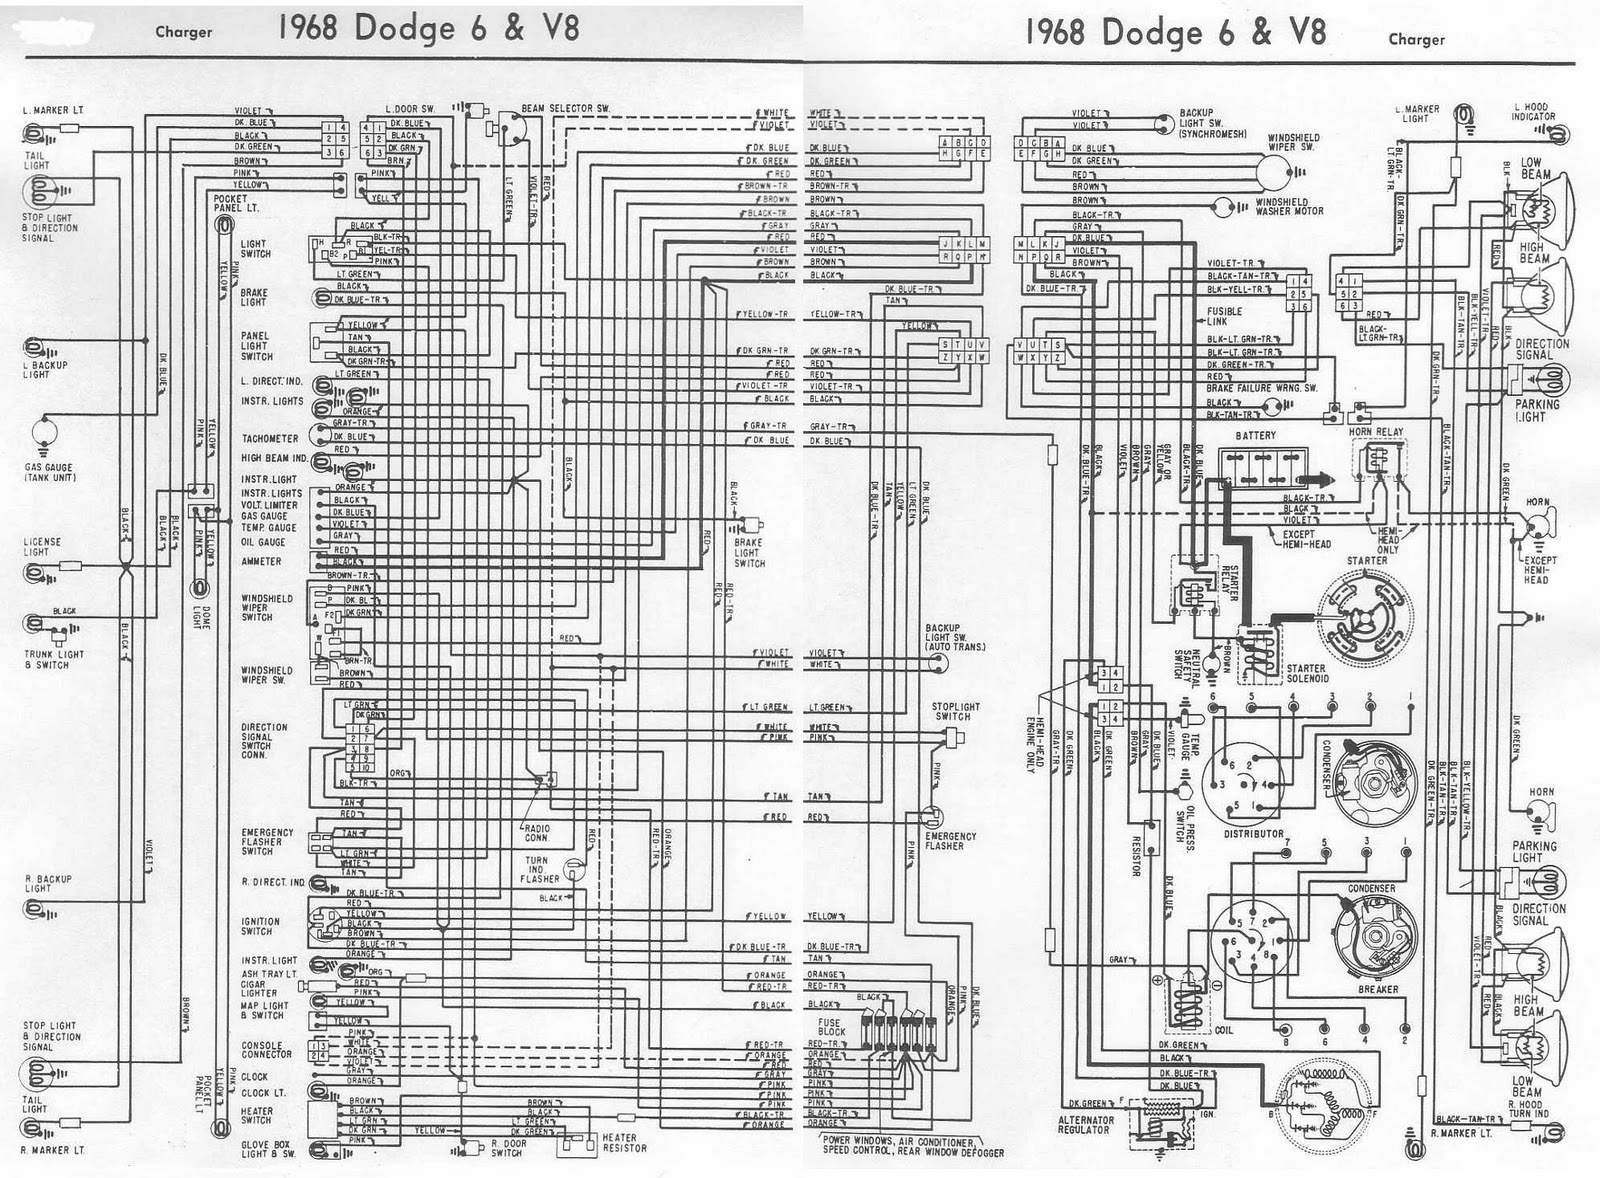 1965 Buick Skylark Wiring Diagram Library Basic Headlight Dodge Charger 1968 6 And V8 Complete Electrical Rendezvous